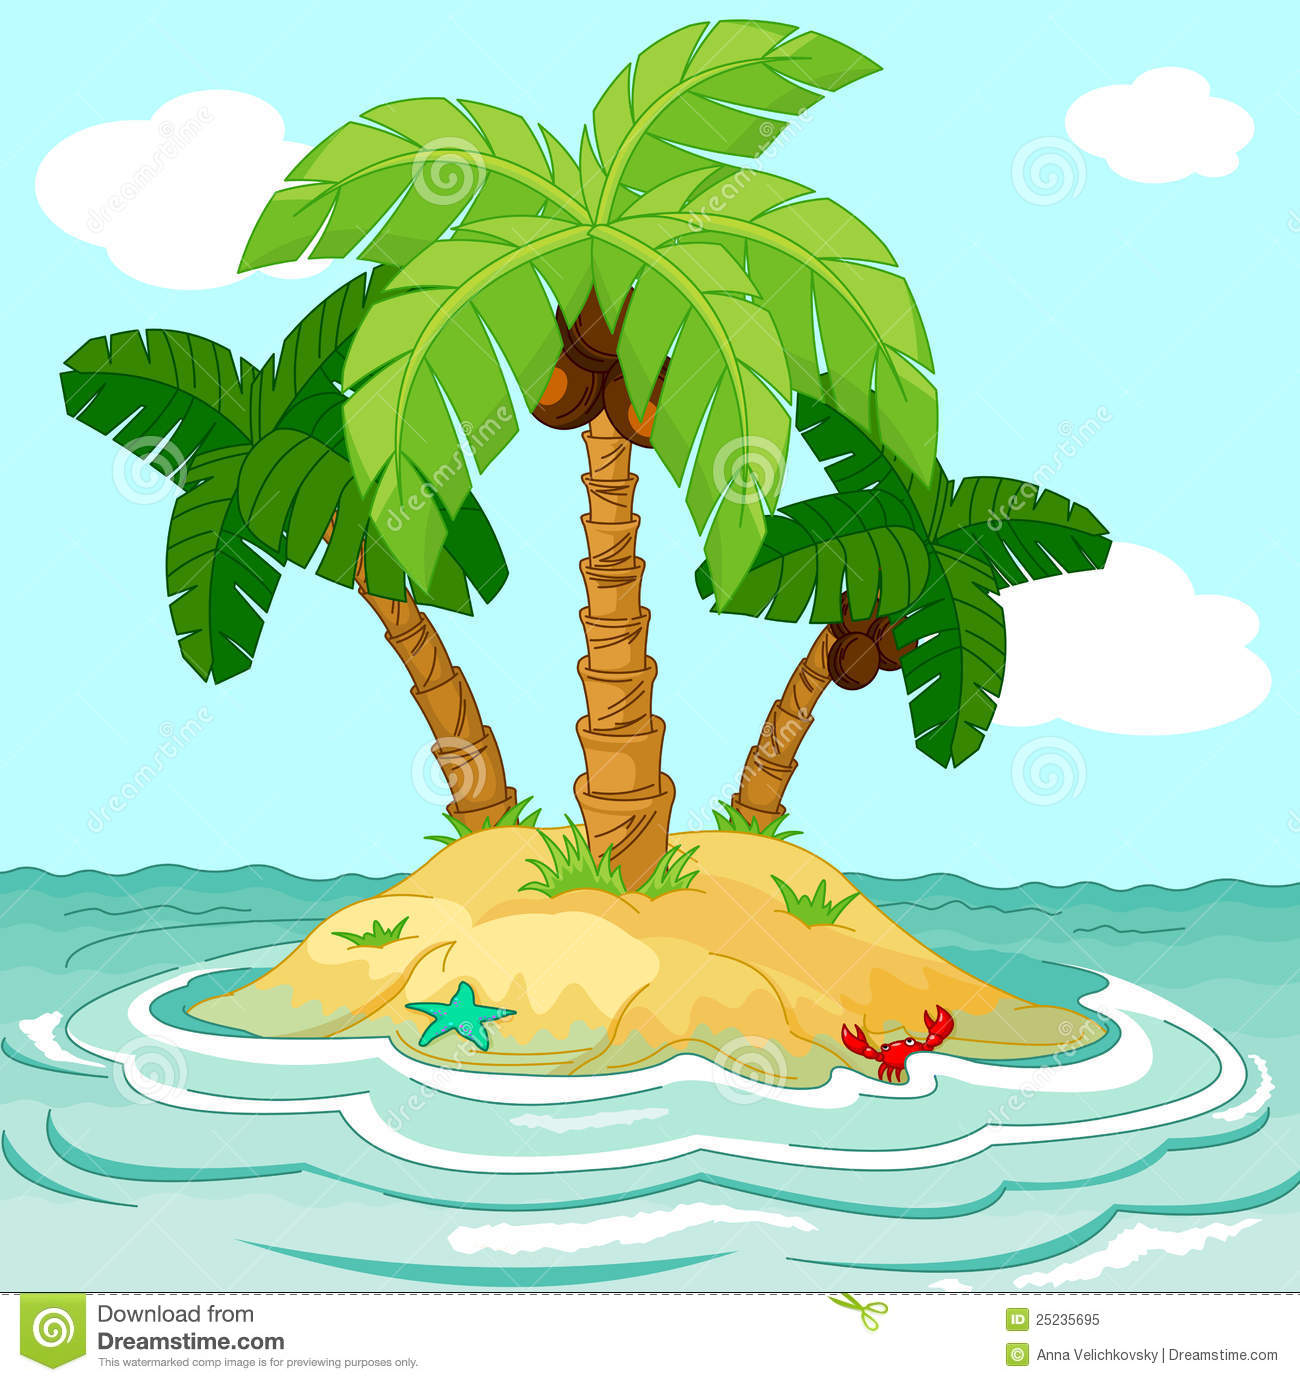 Desert Island Royalty Free Stock Photo - Image: 25235695